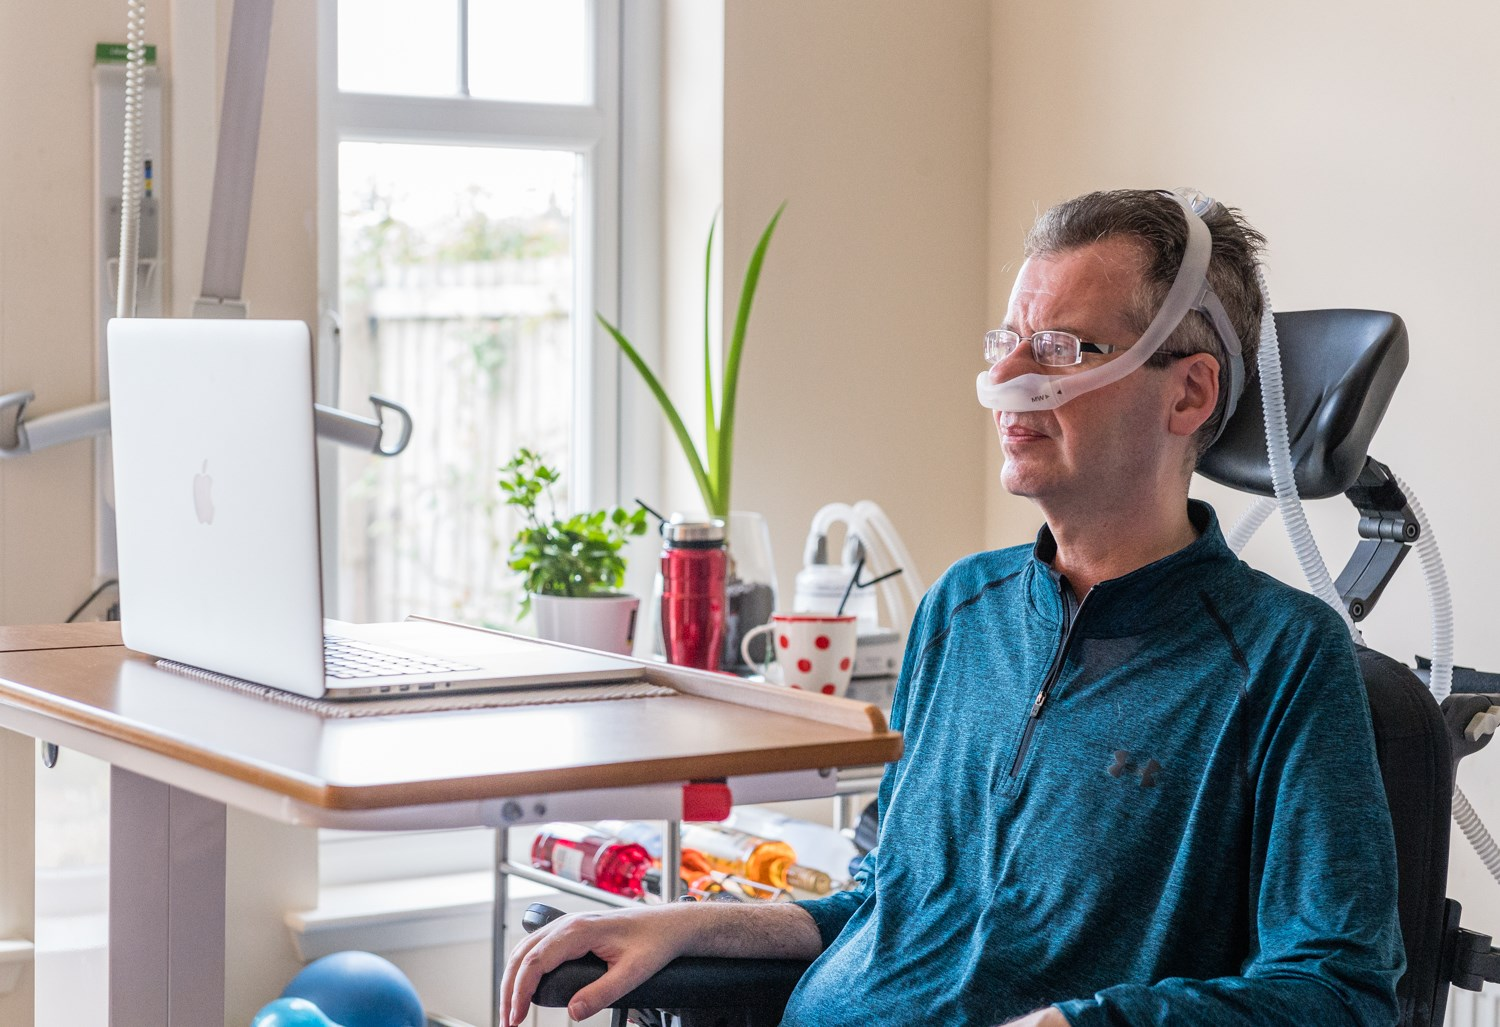 MND Scotland survey launched to gather views on neurological care